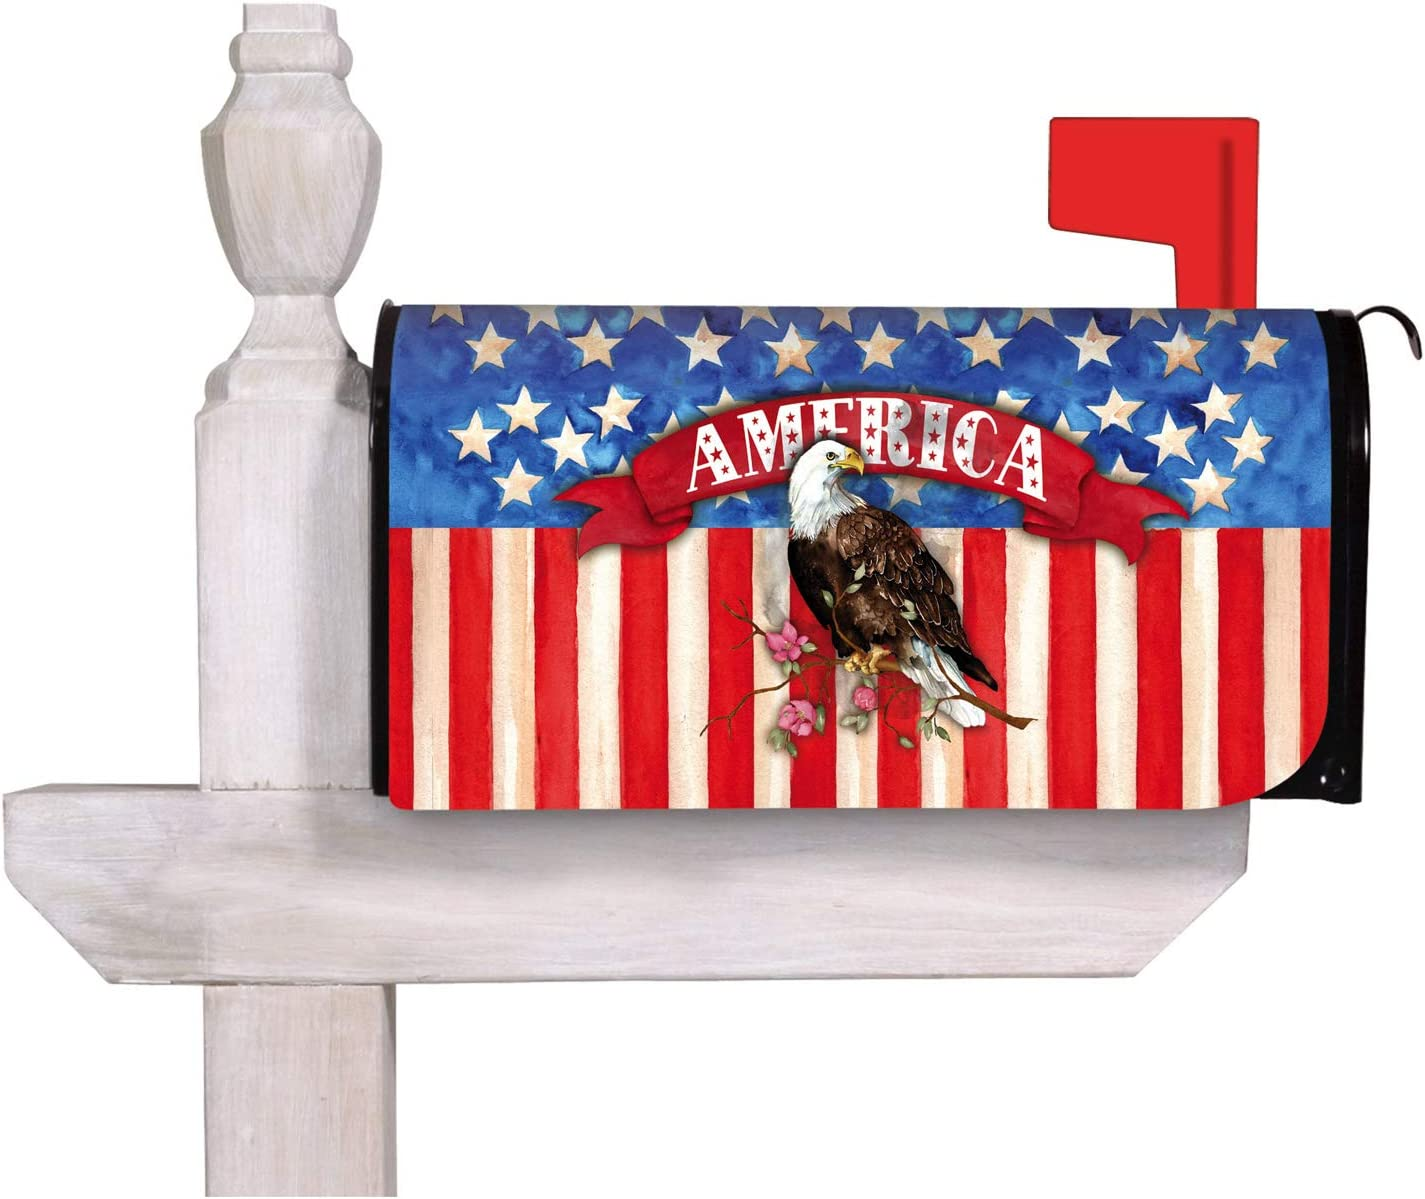 Evergreen Flag Beautiful God Bless America Eagle Mailbox Cover - 18 x 1 x 21 Inches Fade and Weather Resistant Outdoor Decoration for Homes, Yards and Gardens